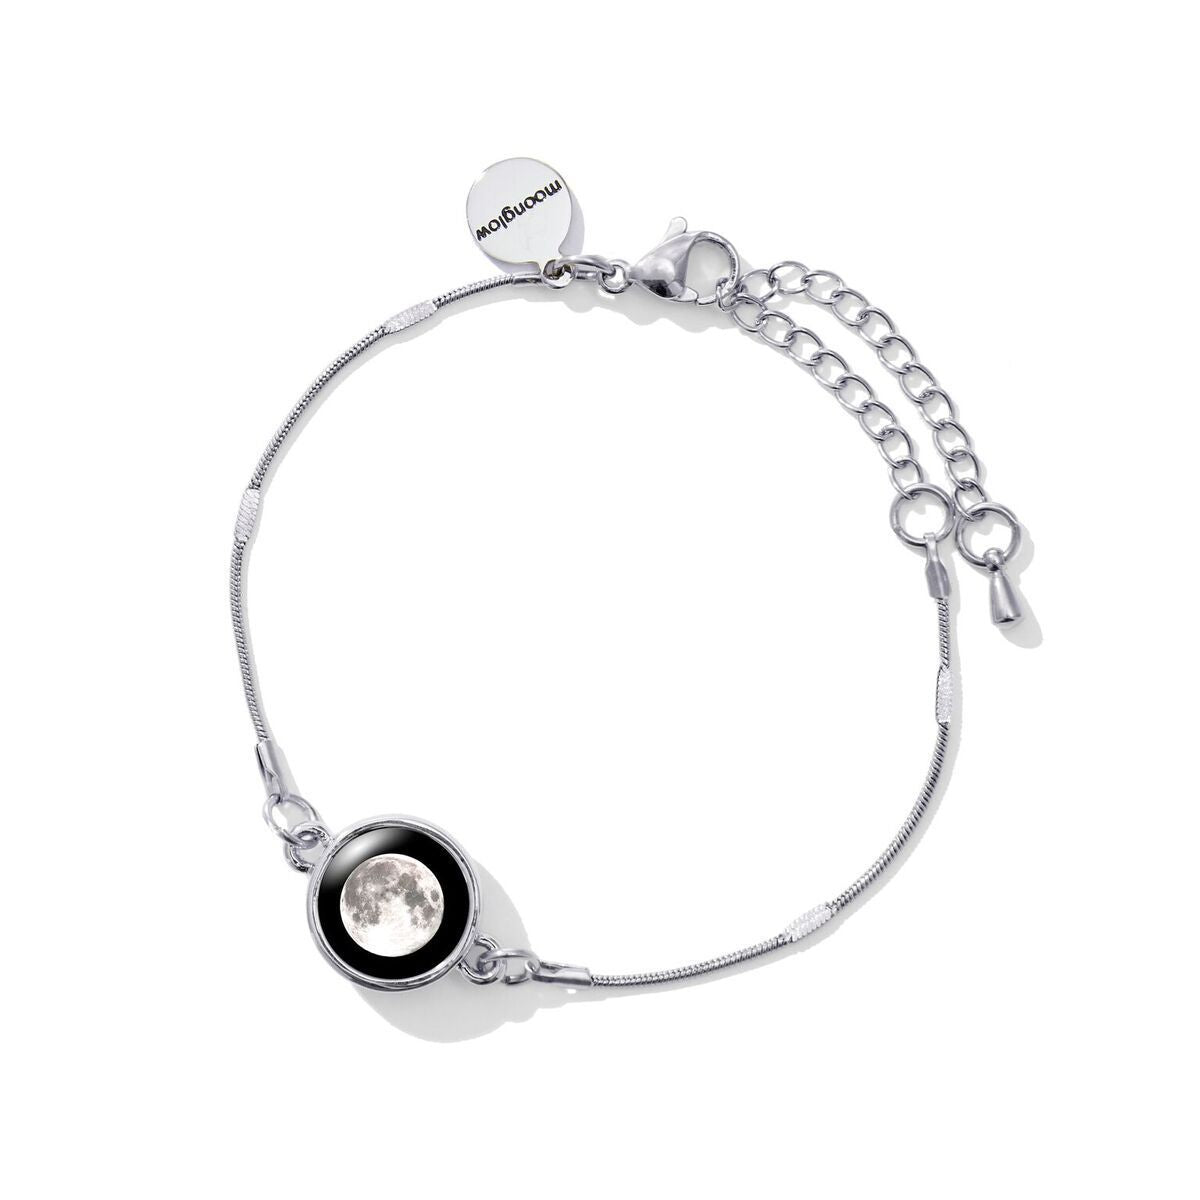 Mini Satellite Bracelet